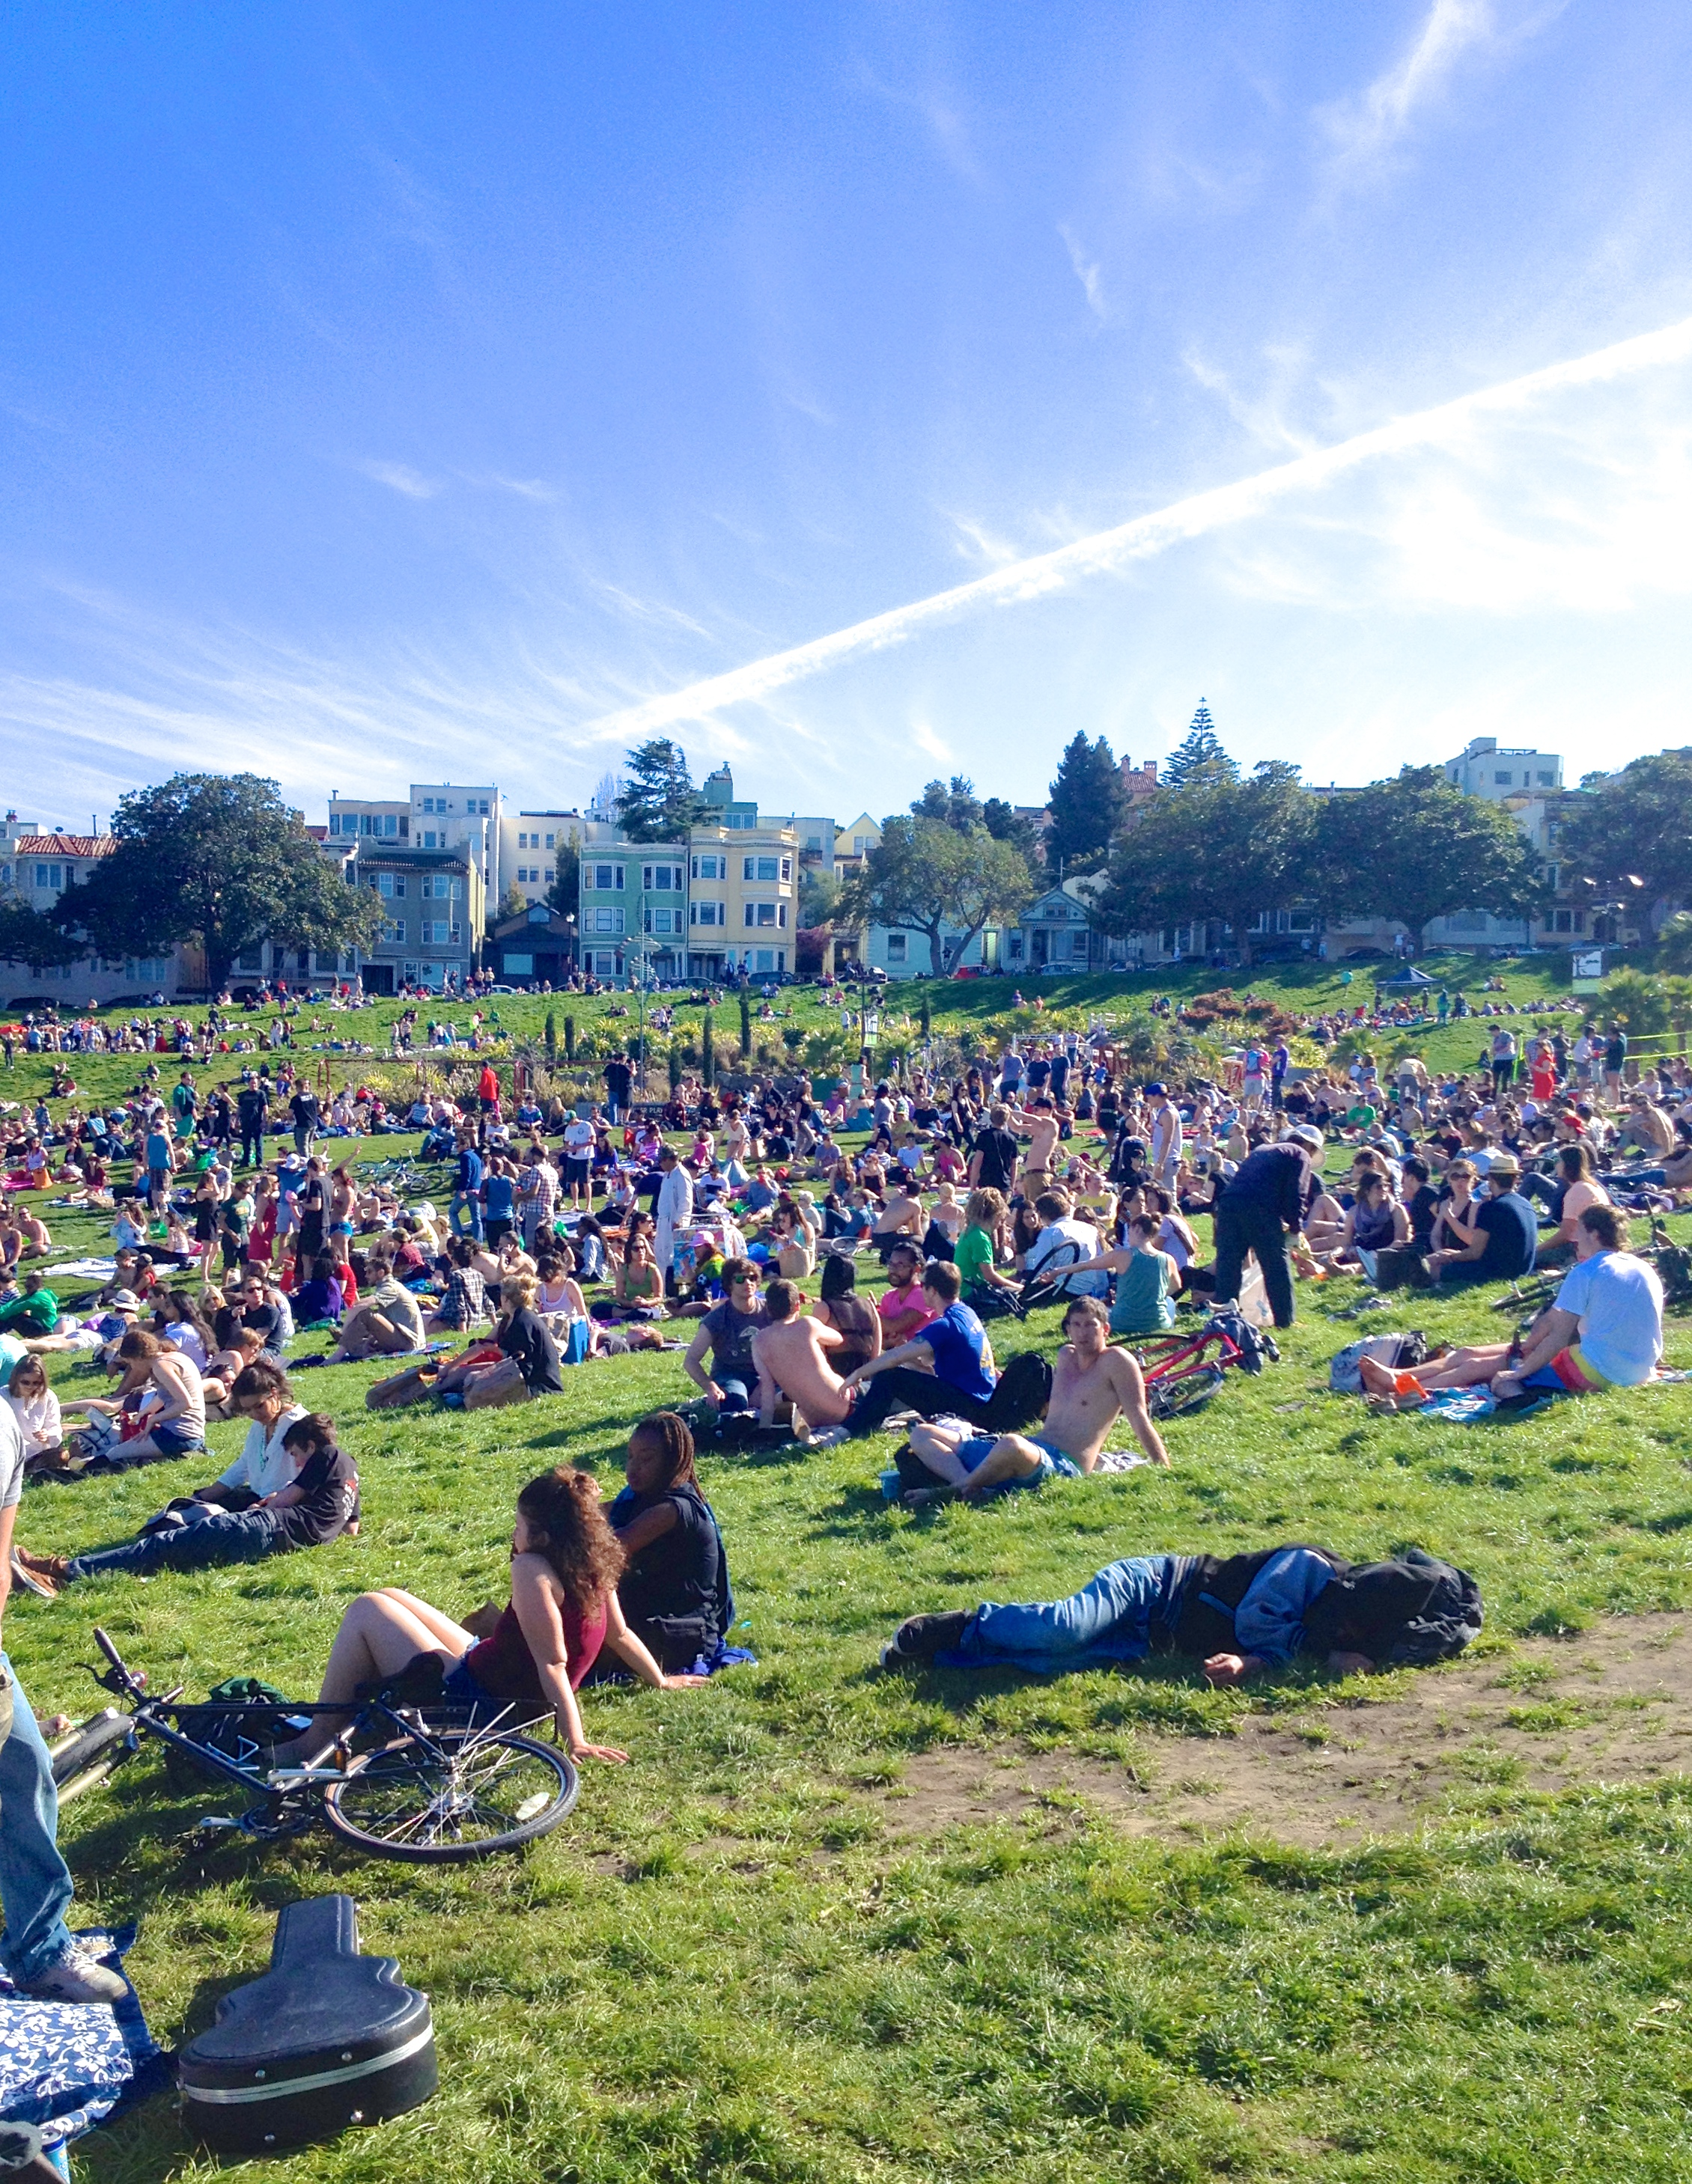 Dolores Park was built for sunny days